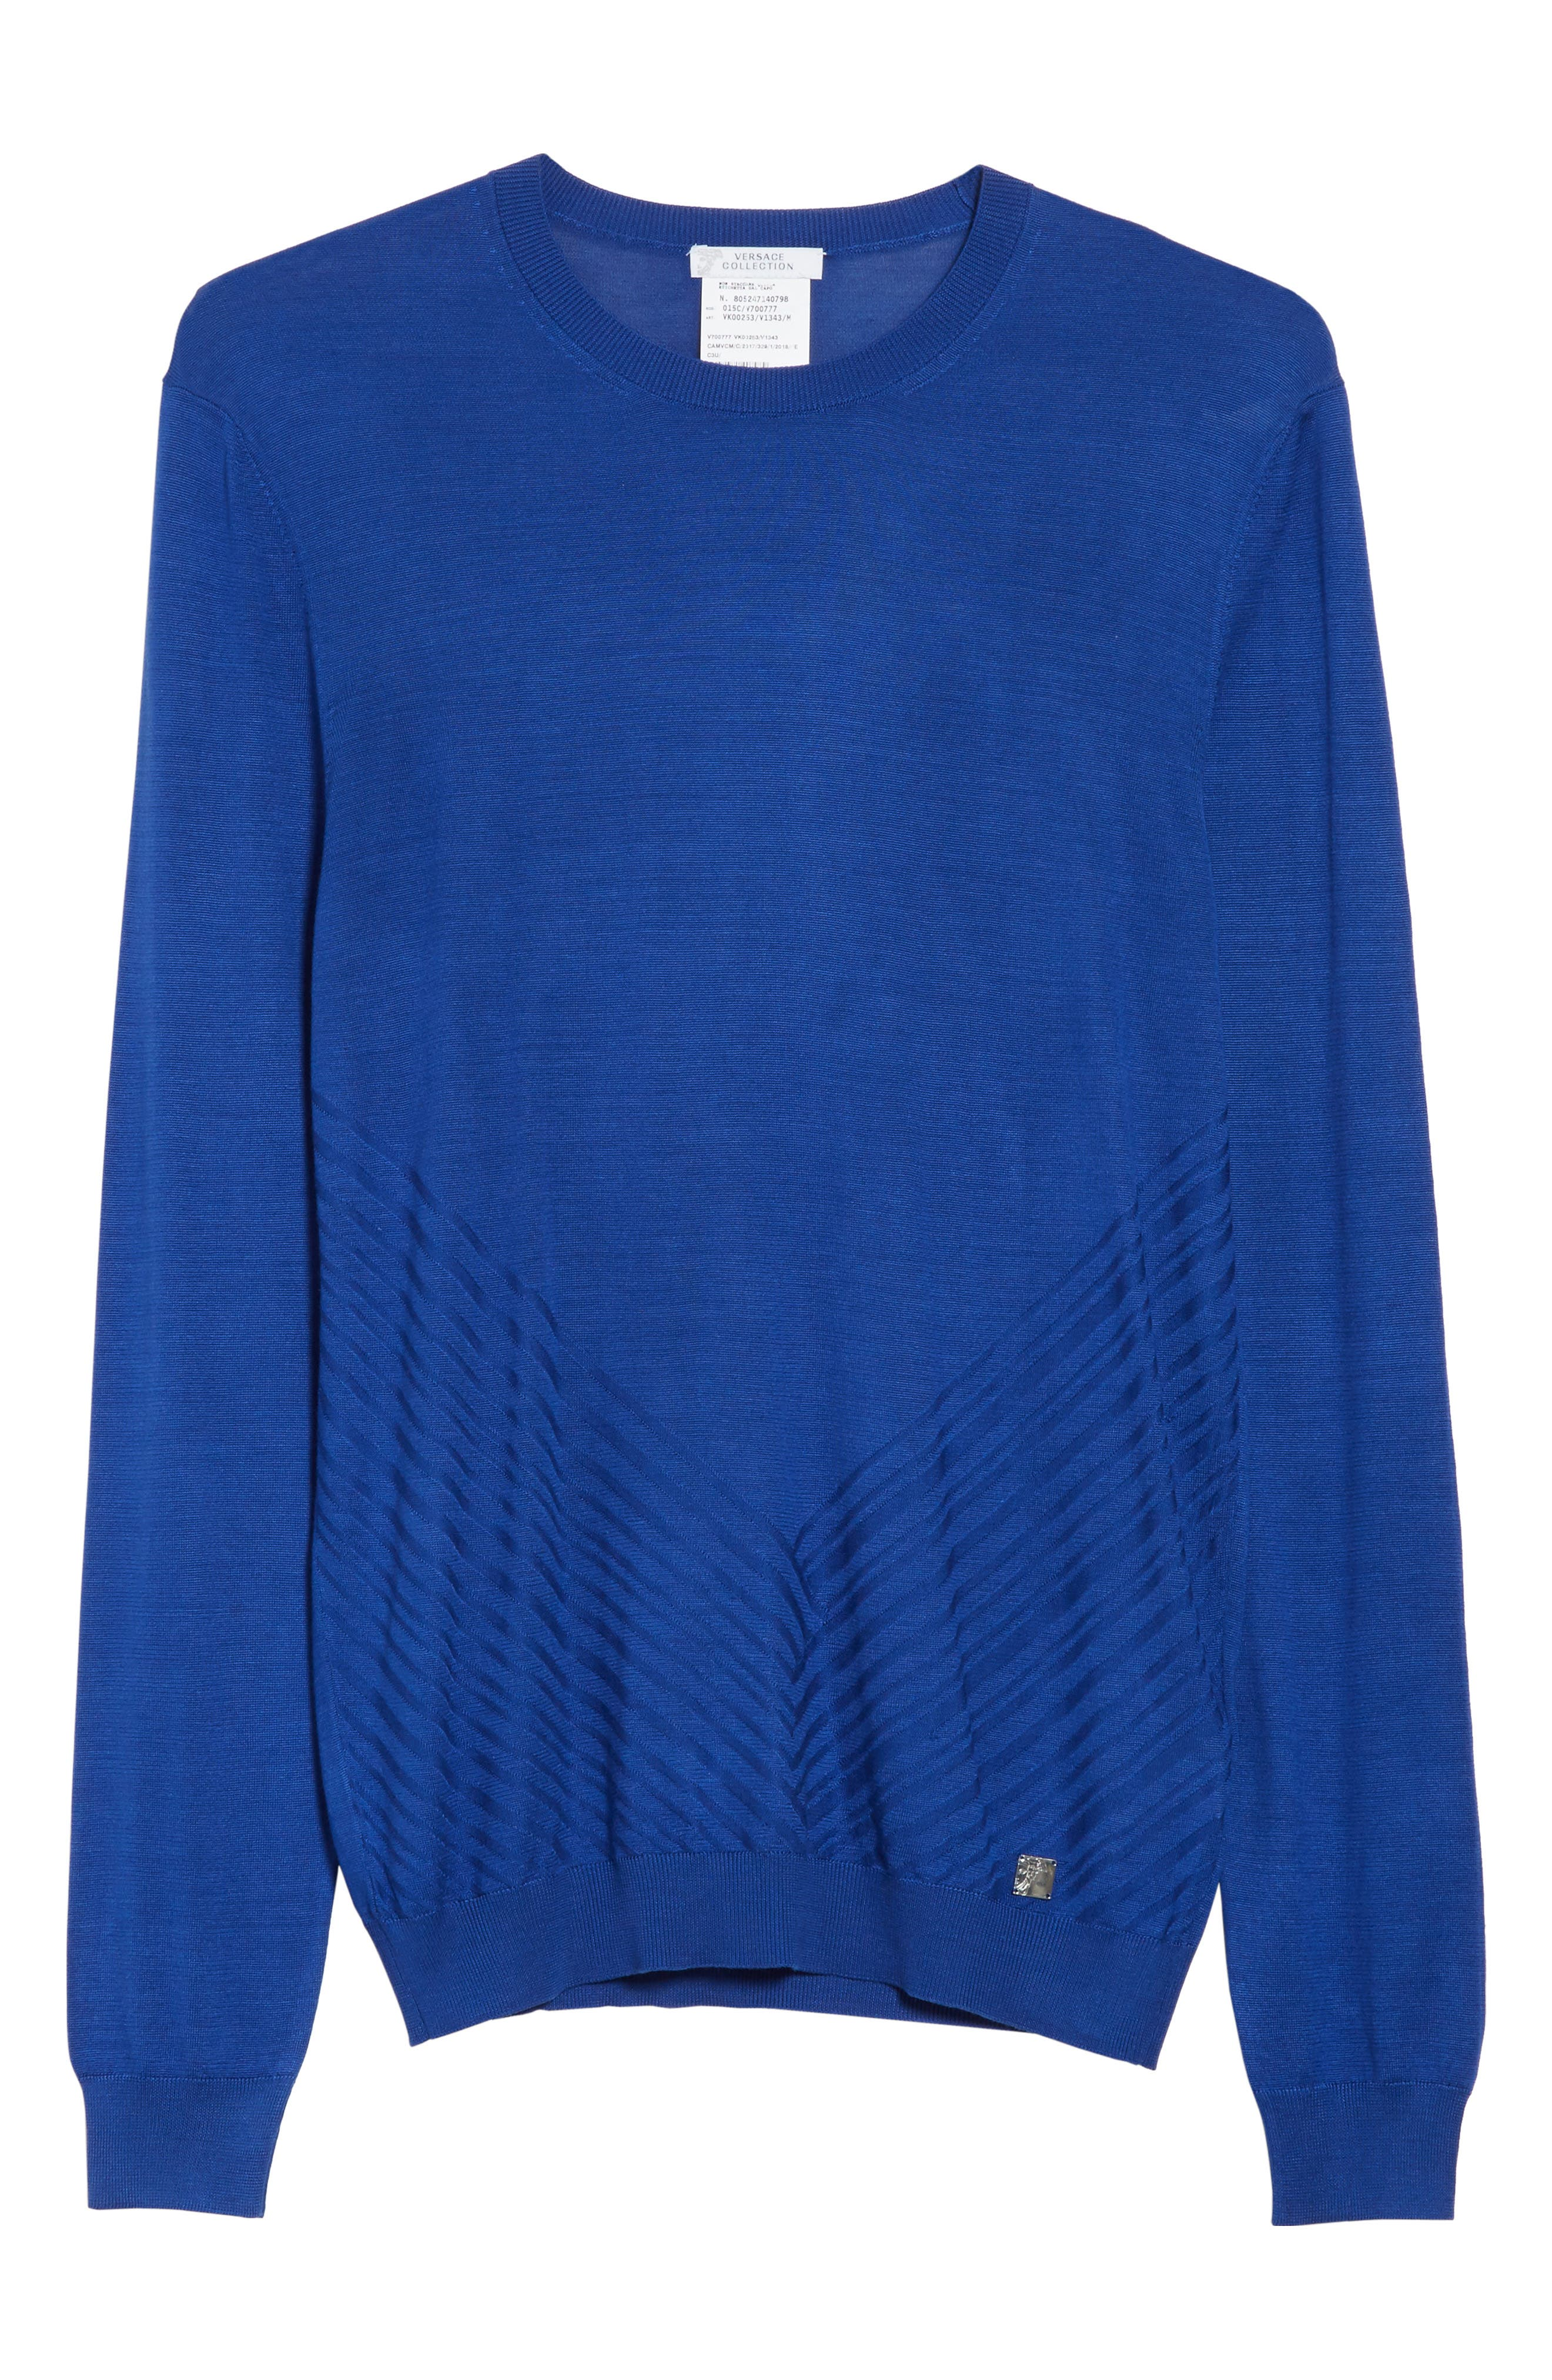 Silk Crewneck Sweater,                             Alternate thumbnail 6, color,                             Royal Blue